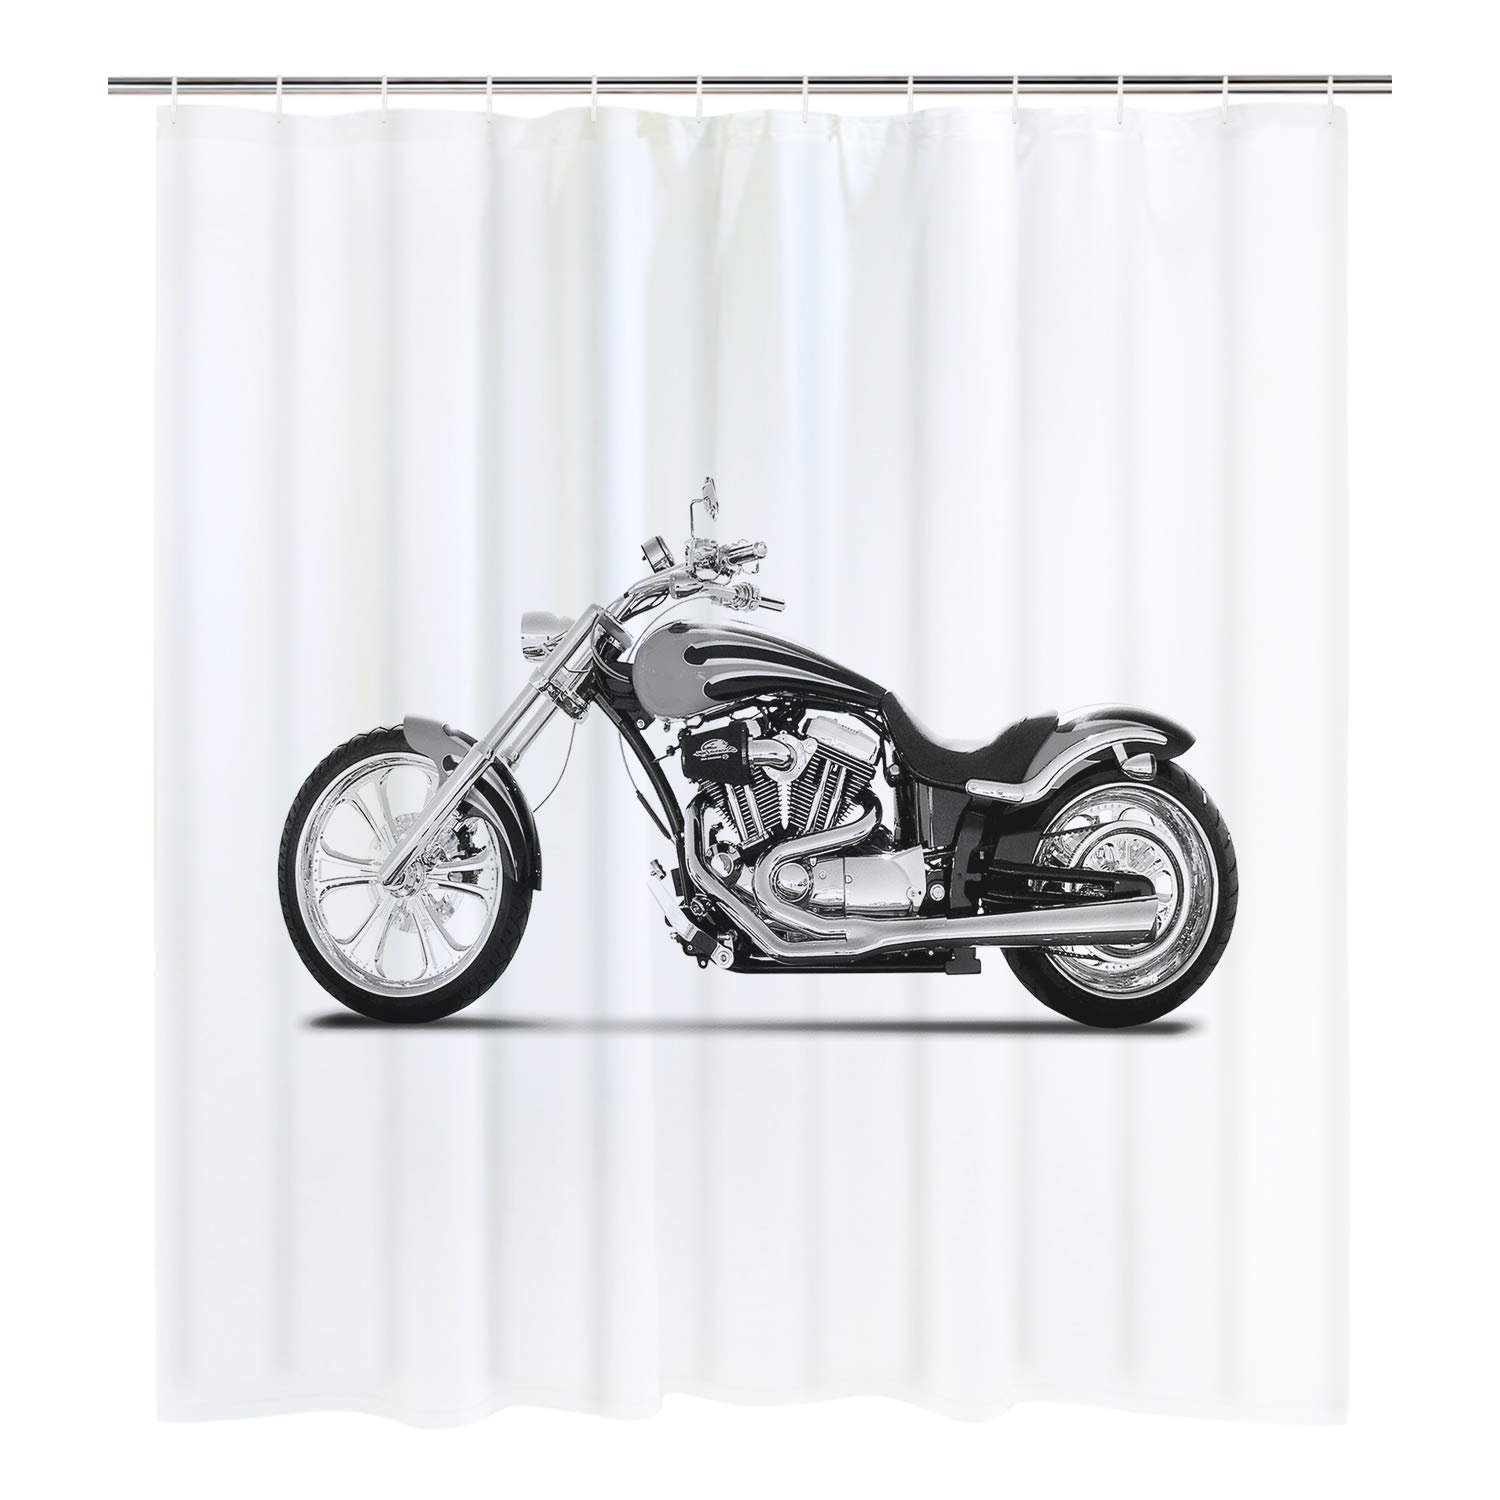 Amazon BLEUM CADE Cool Motorcycle Shower Curtain Black And White Bathroom Durable Mildew Resistant Waterproof With 12 Hooks Home